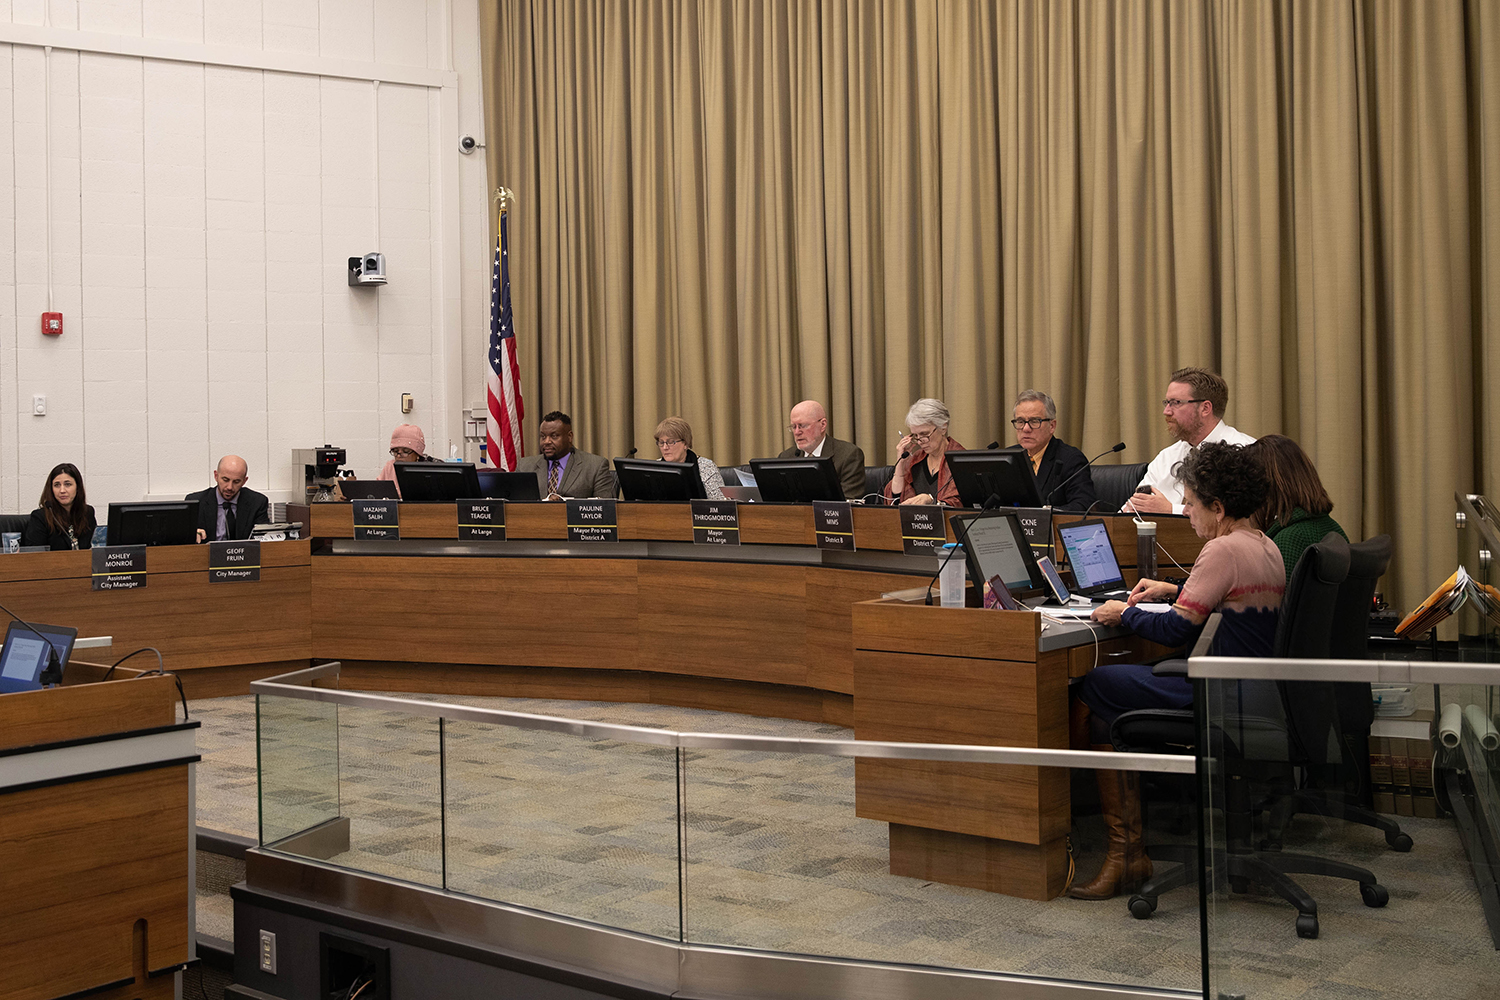 Iowa City city councilors meet at City Hall on Tuesday, Nov. 19, 2019. The City council heard from community members and discussed various agenda items.